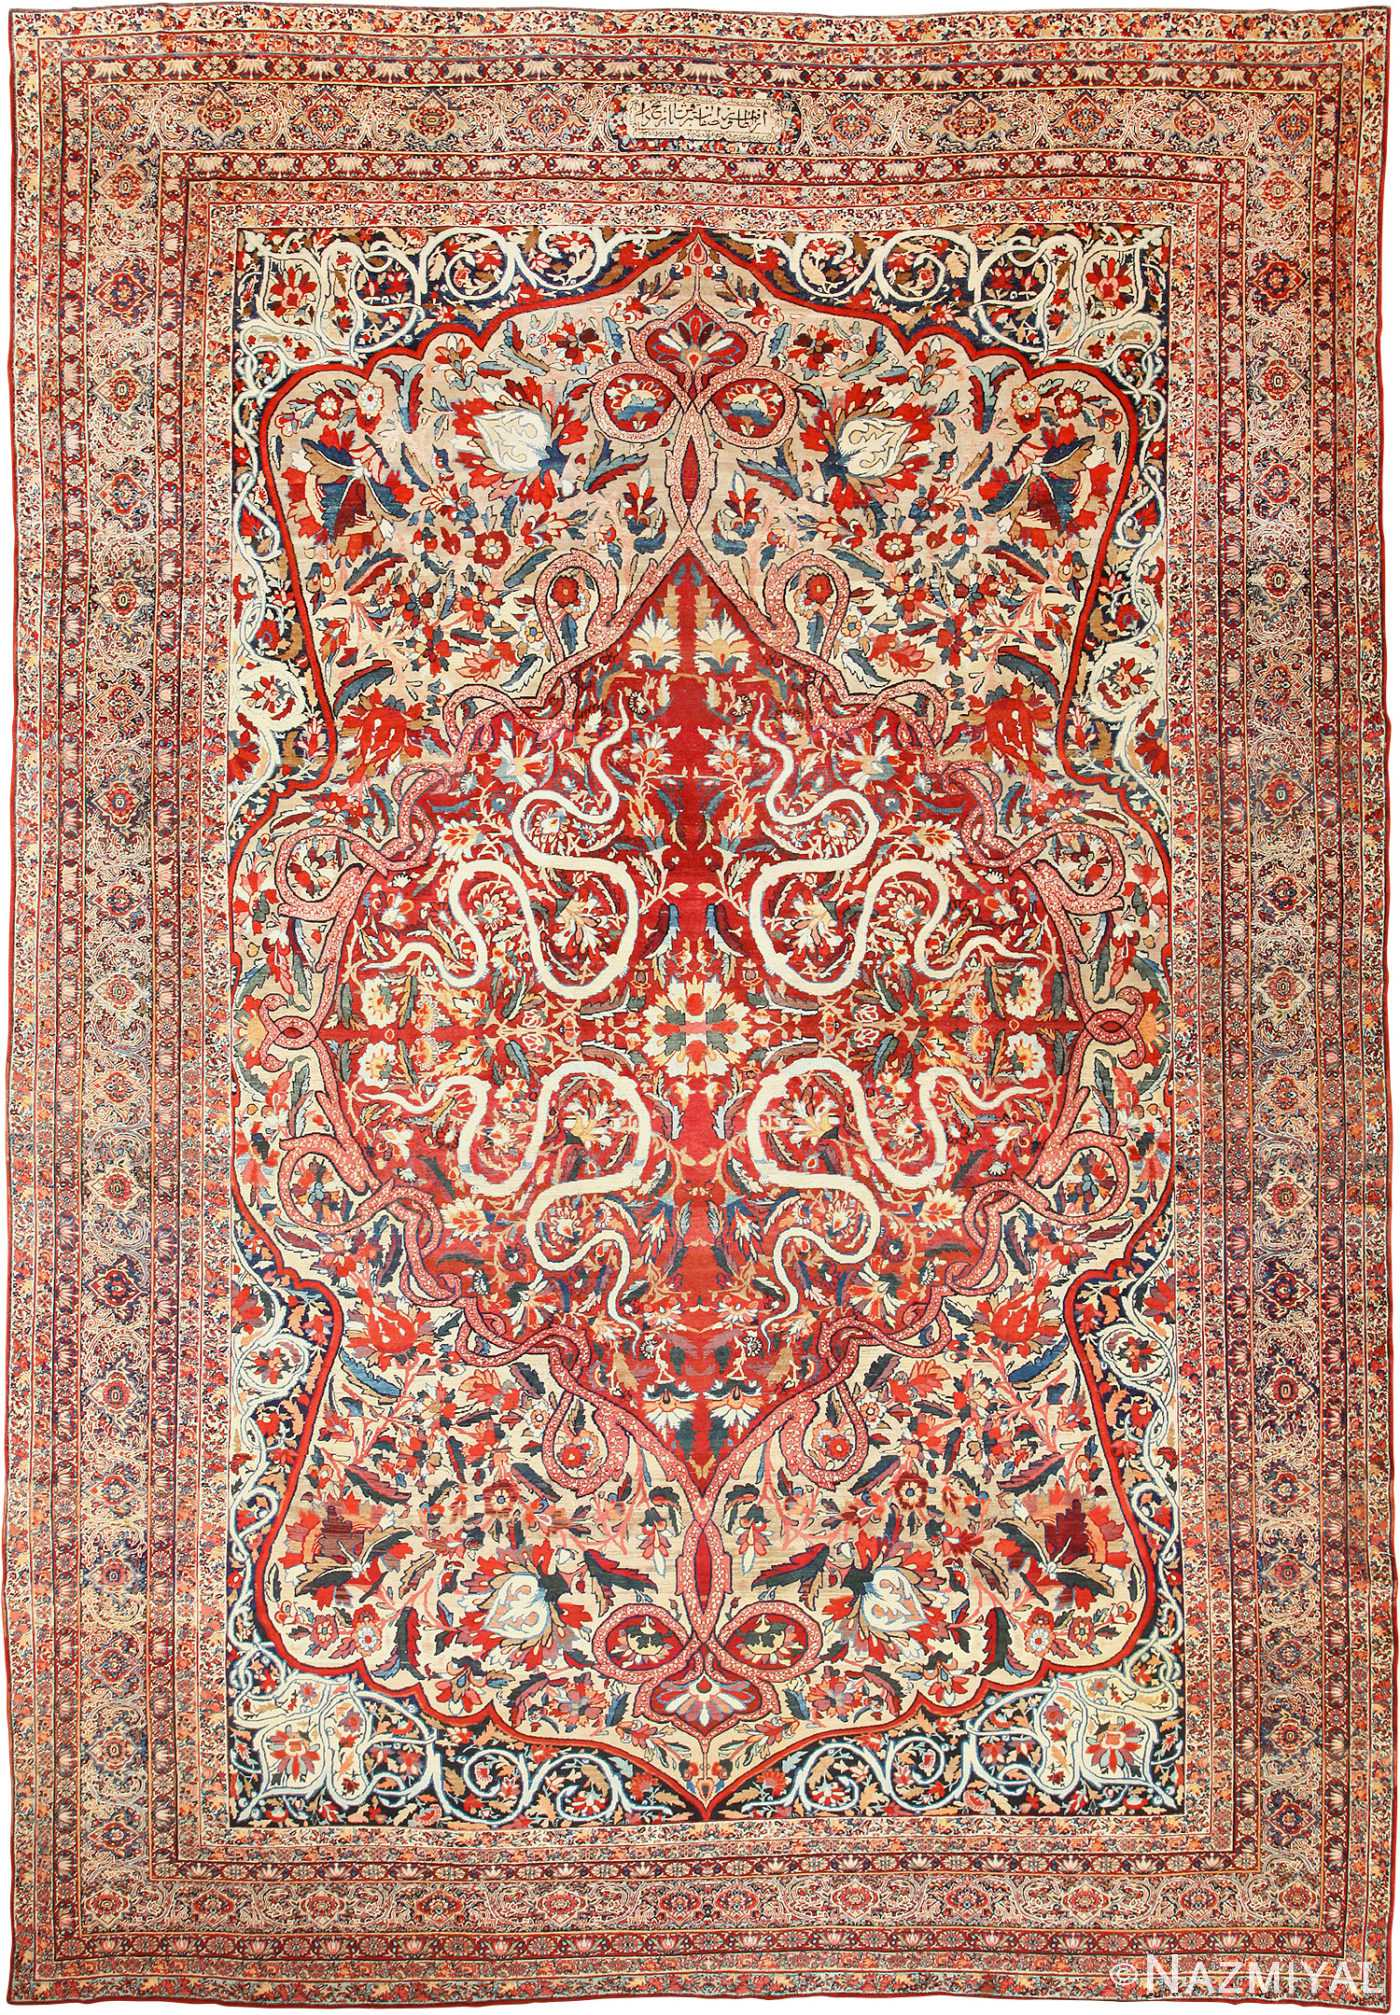 Wool And Silk Rugs Silk With Wool Carpets Antique Wool